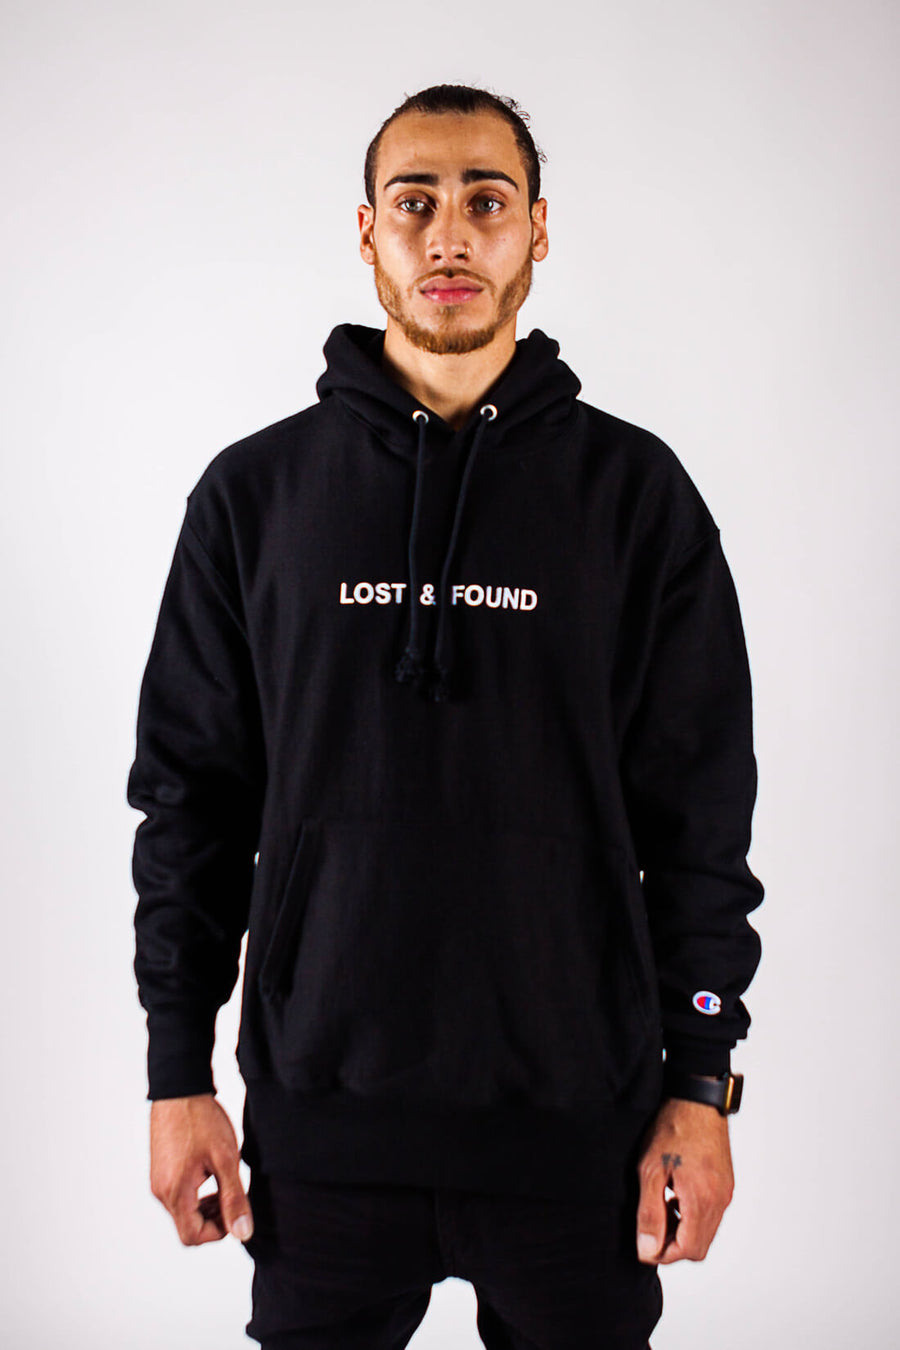 LOST & FOUND HOODIE - PURPLE & CHROME